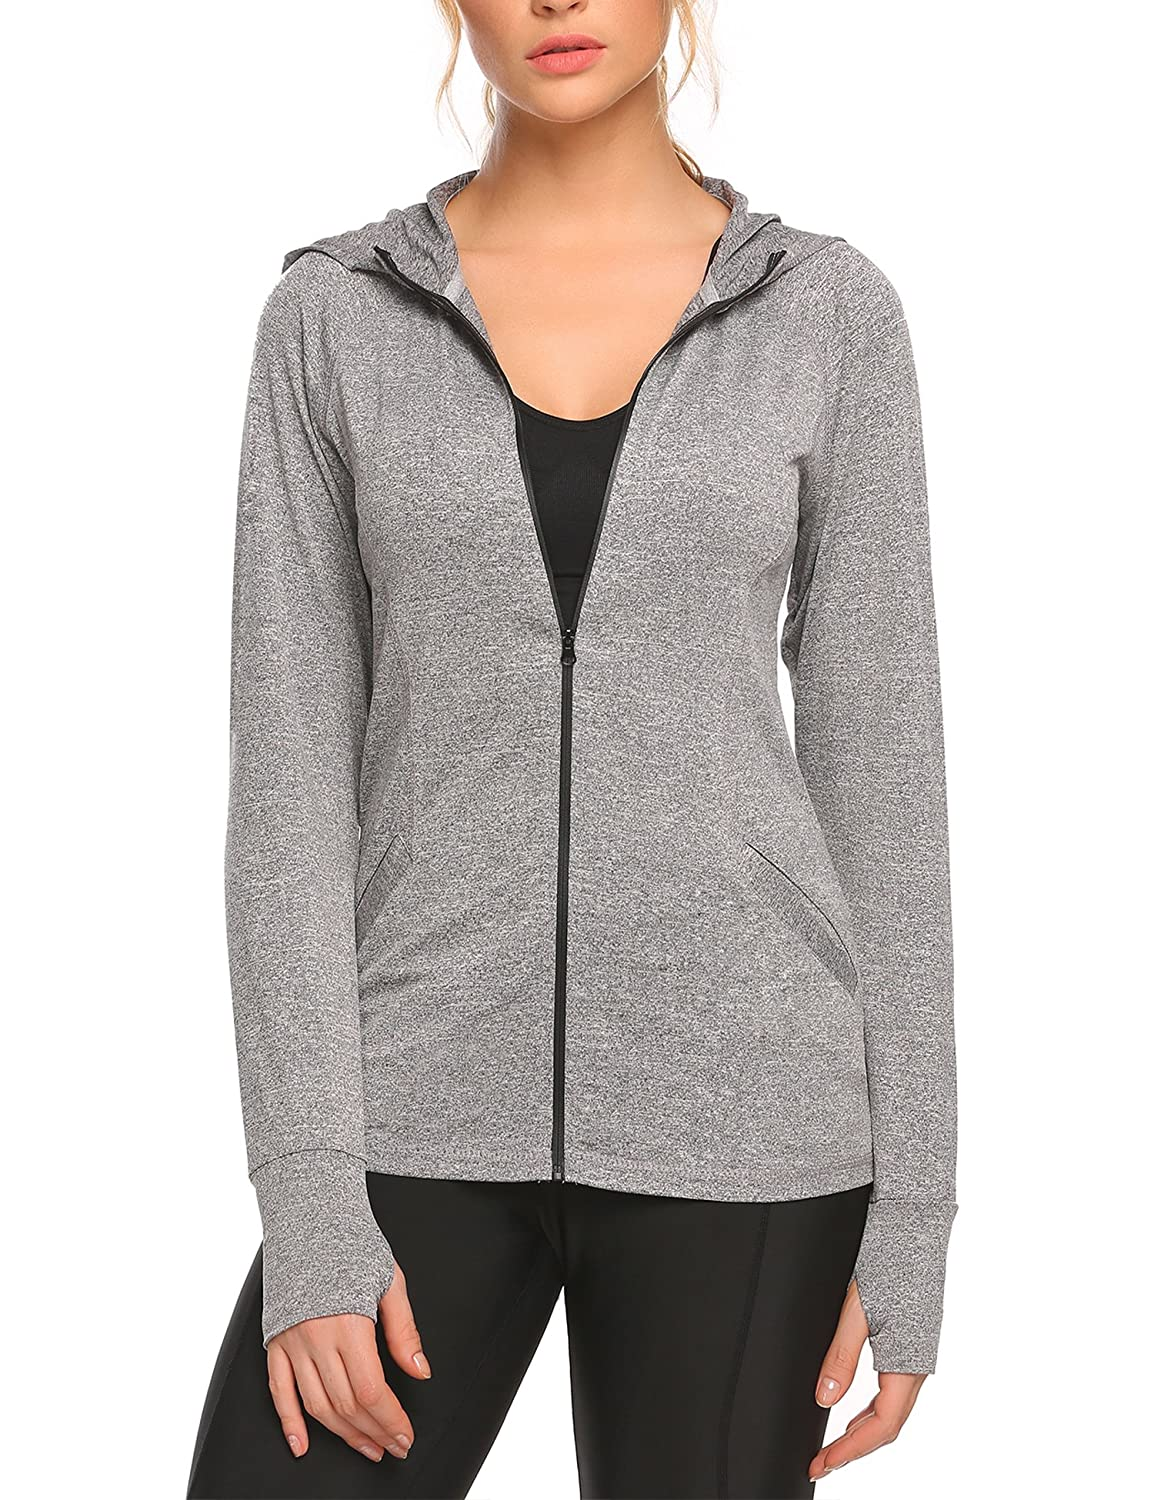 Women's Running Sports Jackets Full-zip Hoodie Coat with Thumb Hole